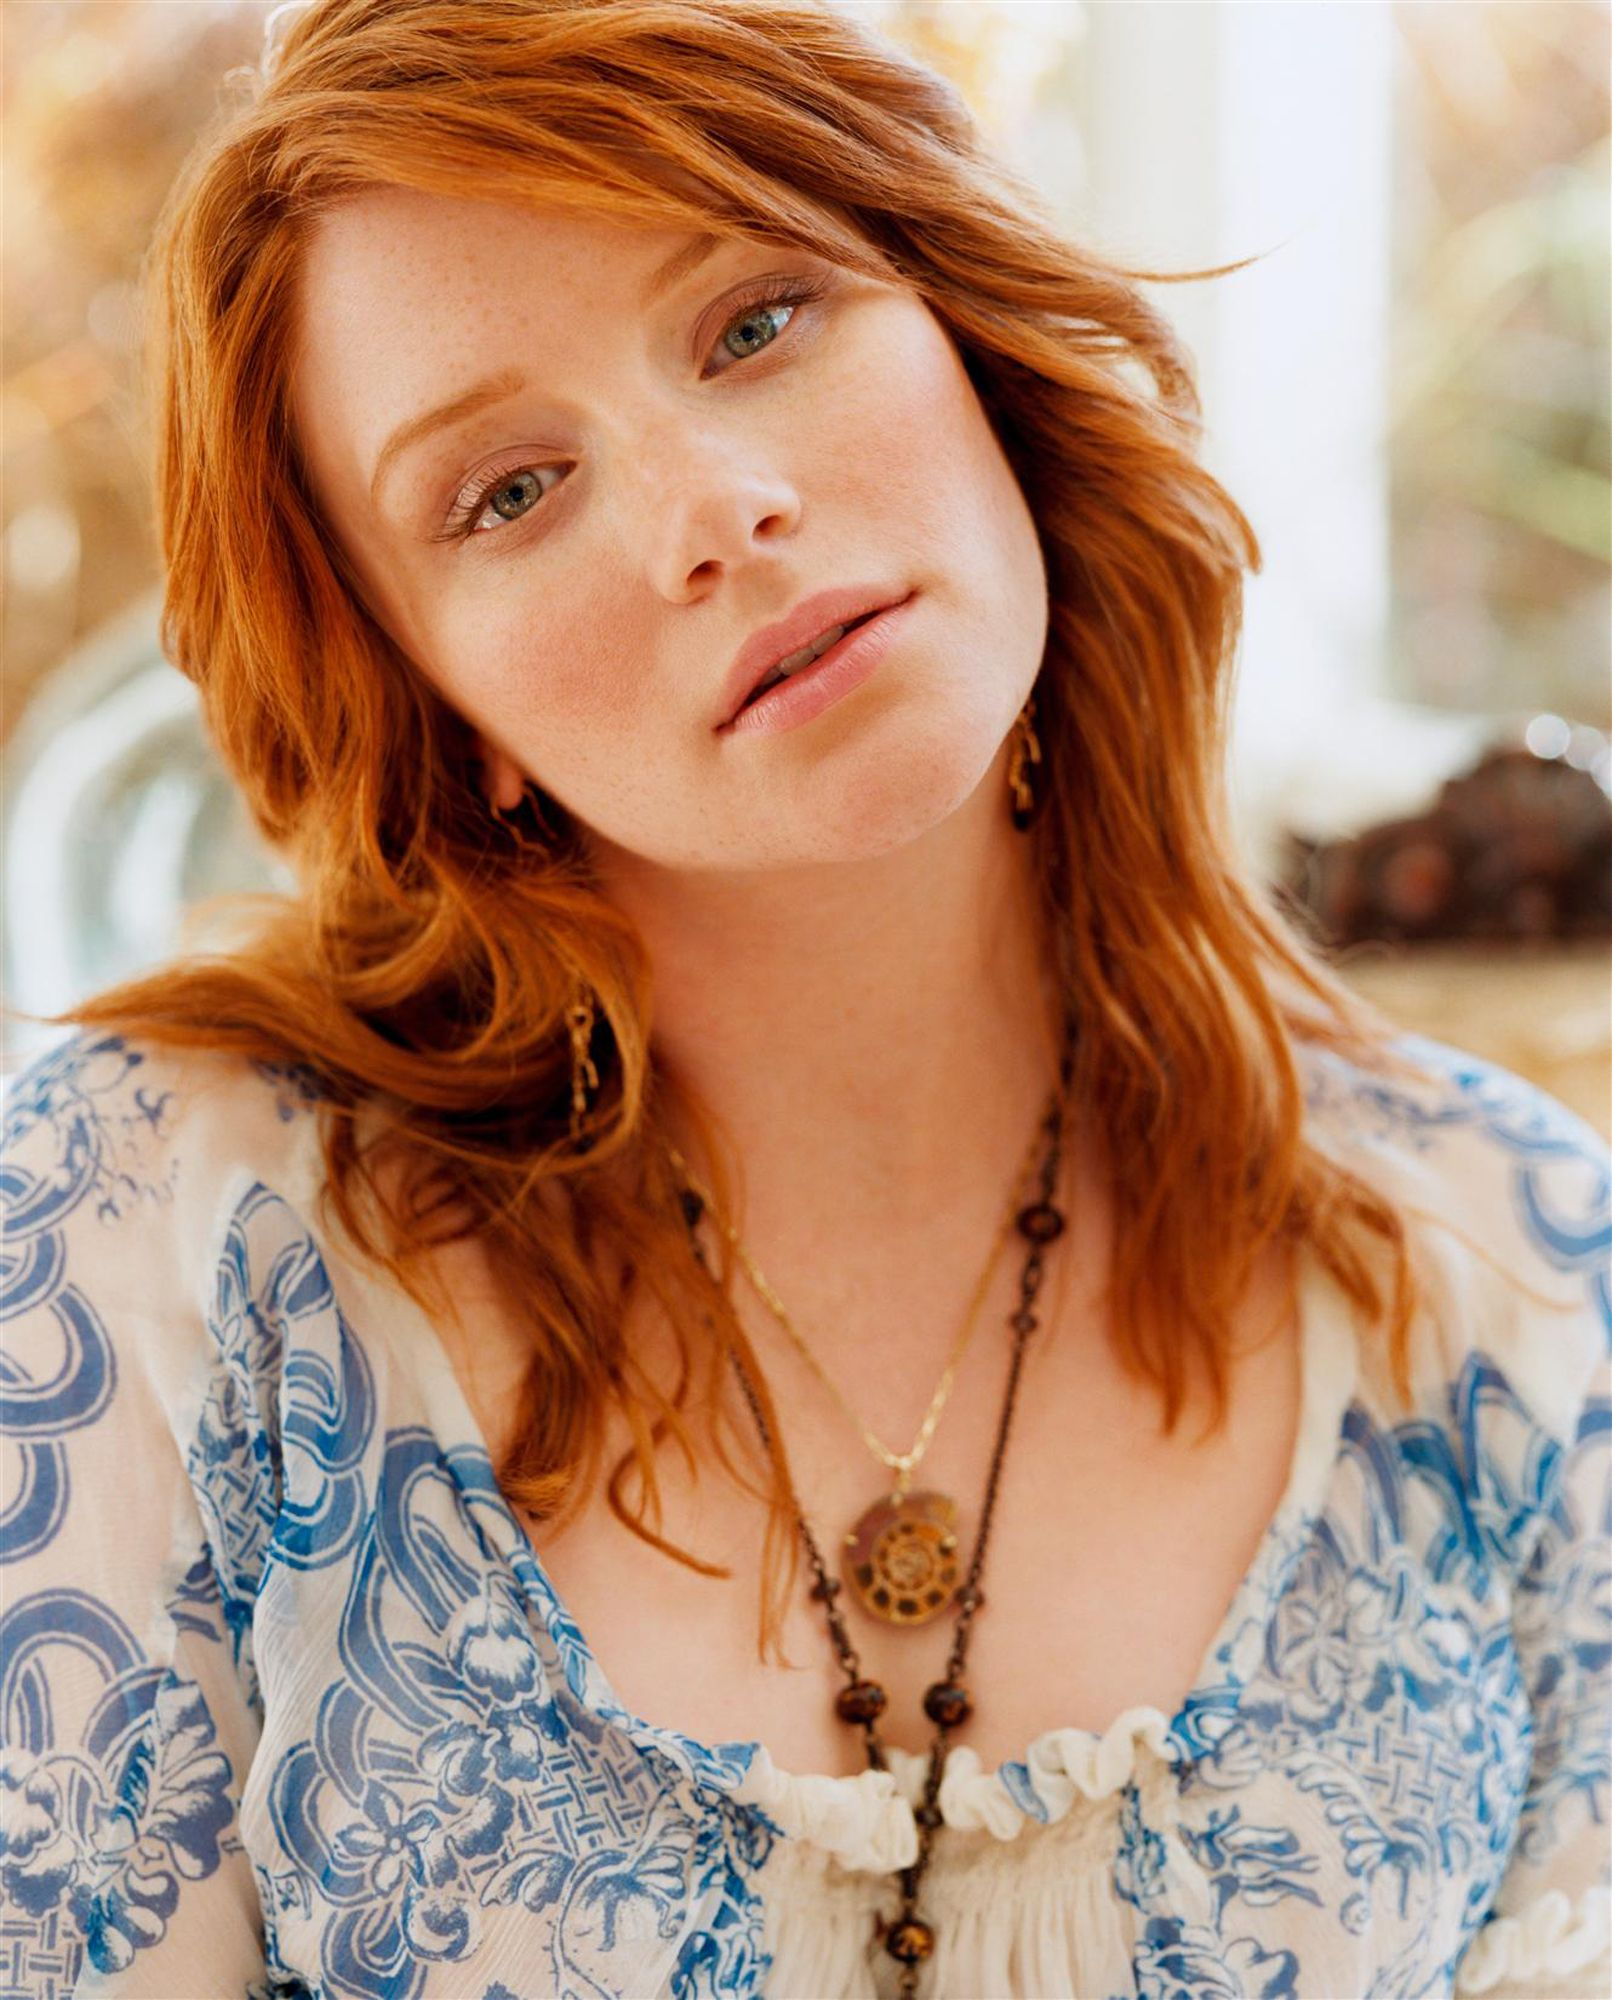 Best Picture Bryce Dallas Howard